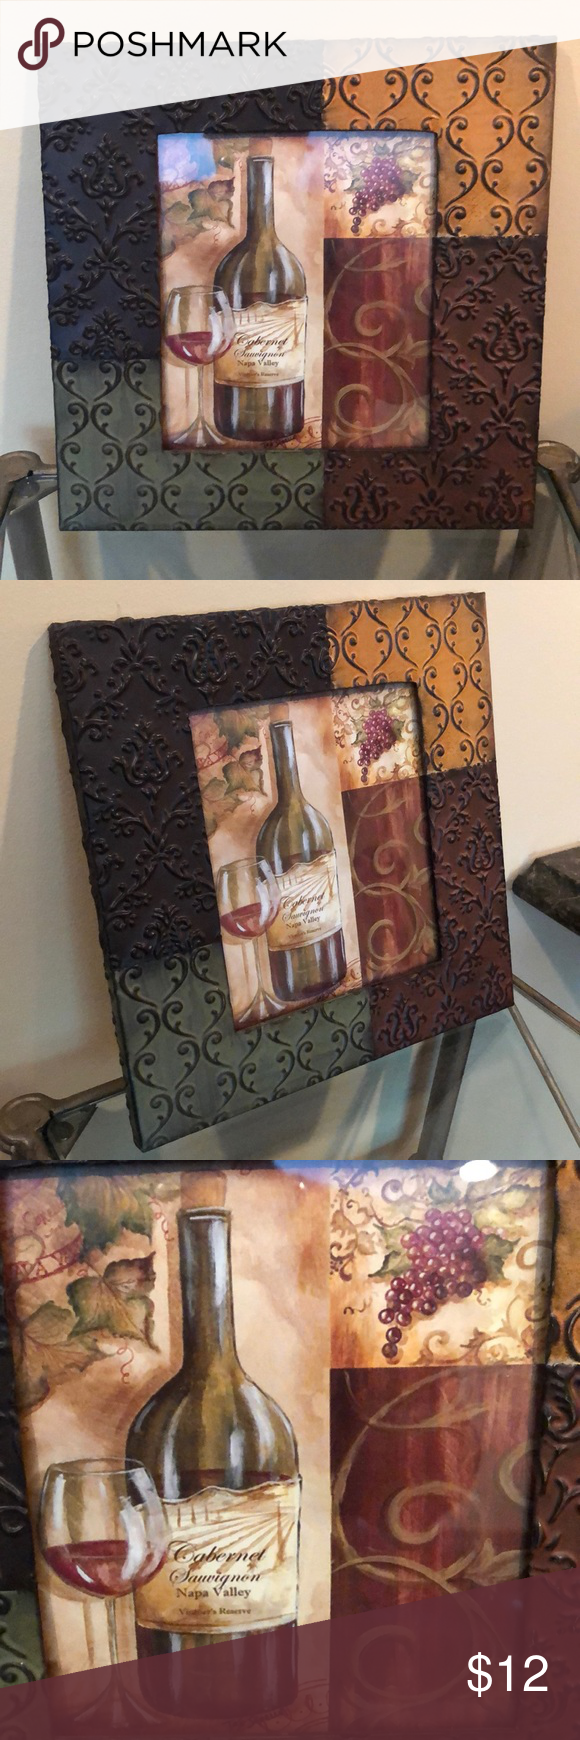 Framing A 10x10 Room: Wall Art 10x10 Metal Frame And Wine Walk Art. Other